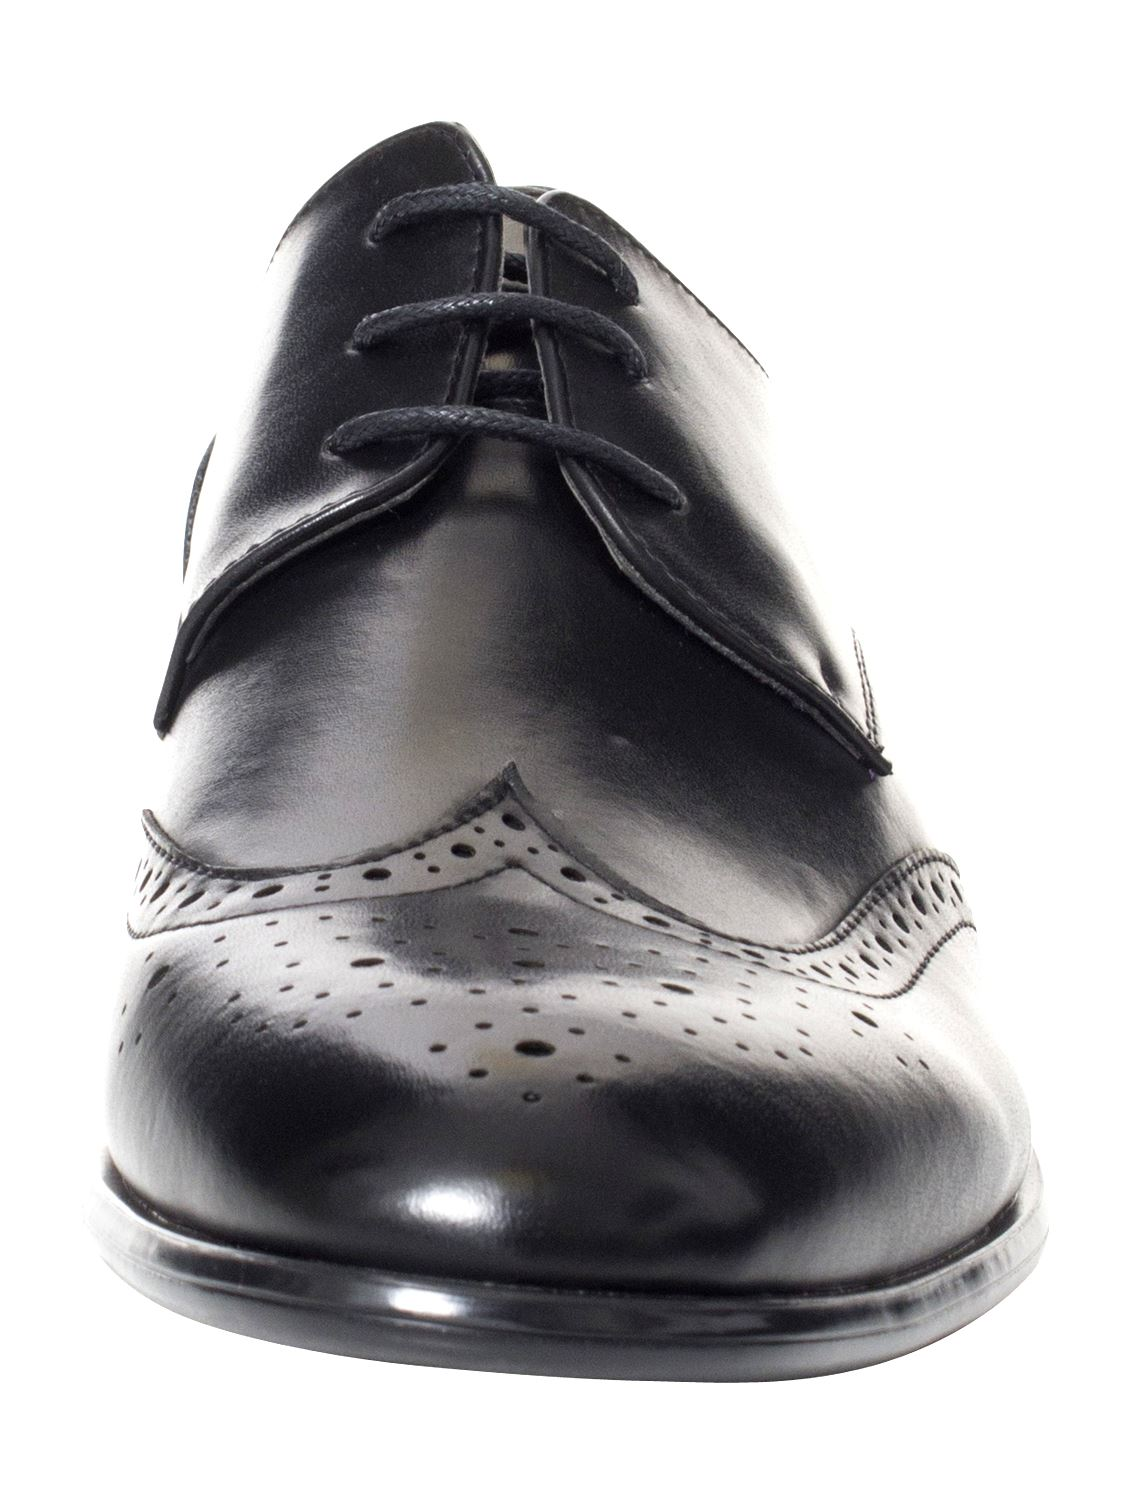 Mens-Faux-Leather-Shoes-Smart-Formal-Wedding-Office-Lace-Up-Designer-Brogues thumbnail 20